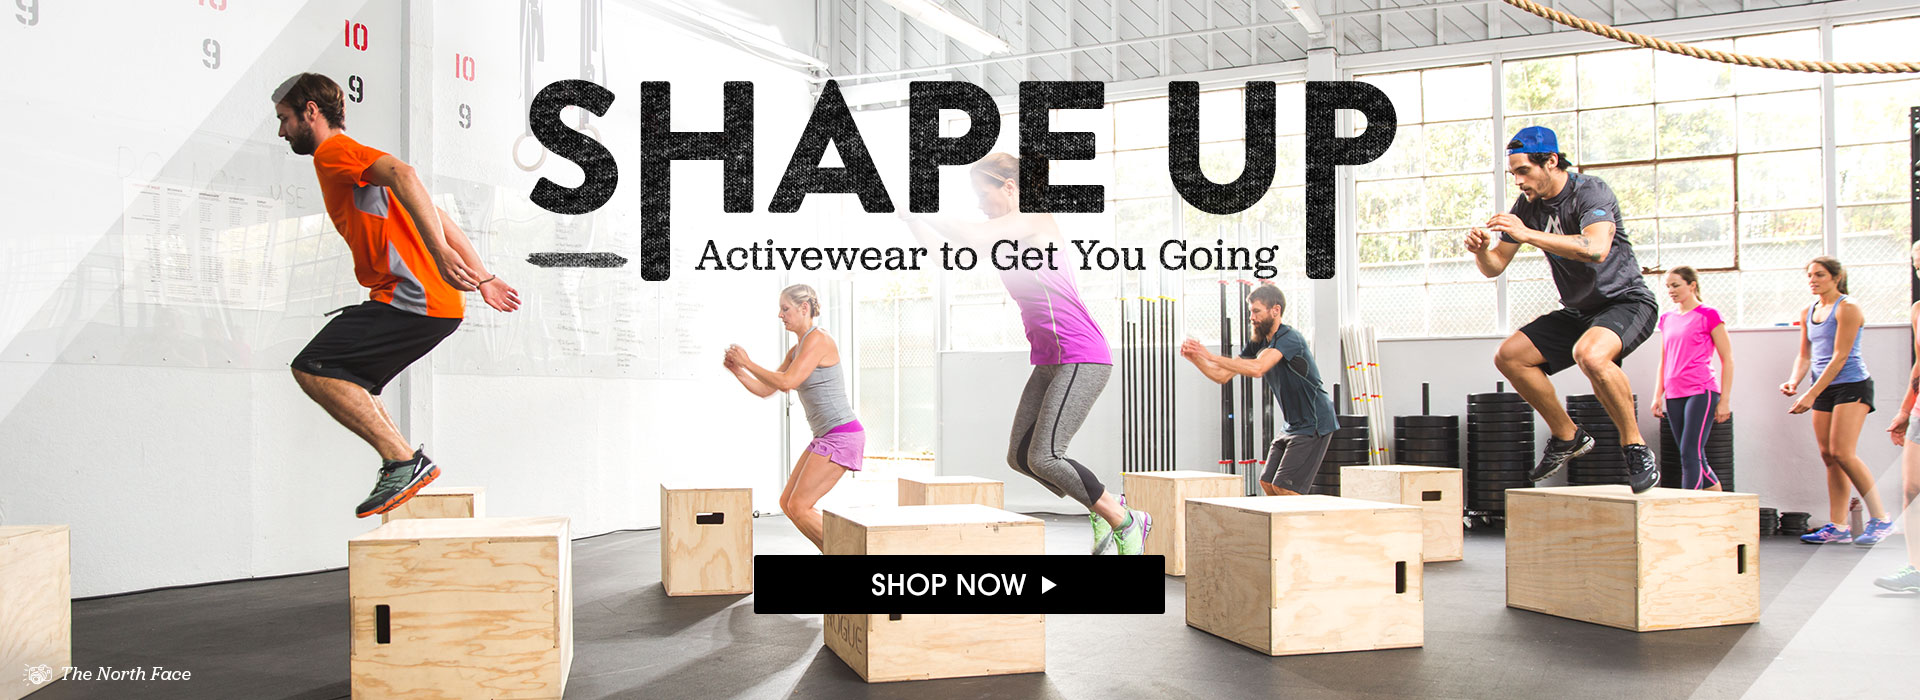 Shape Up. Activewear to Get You Going. Shop Now.